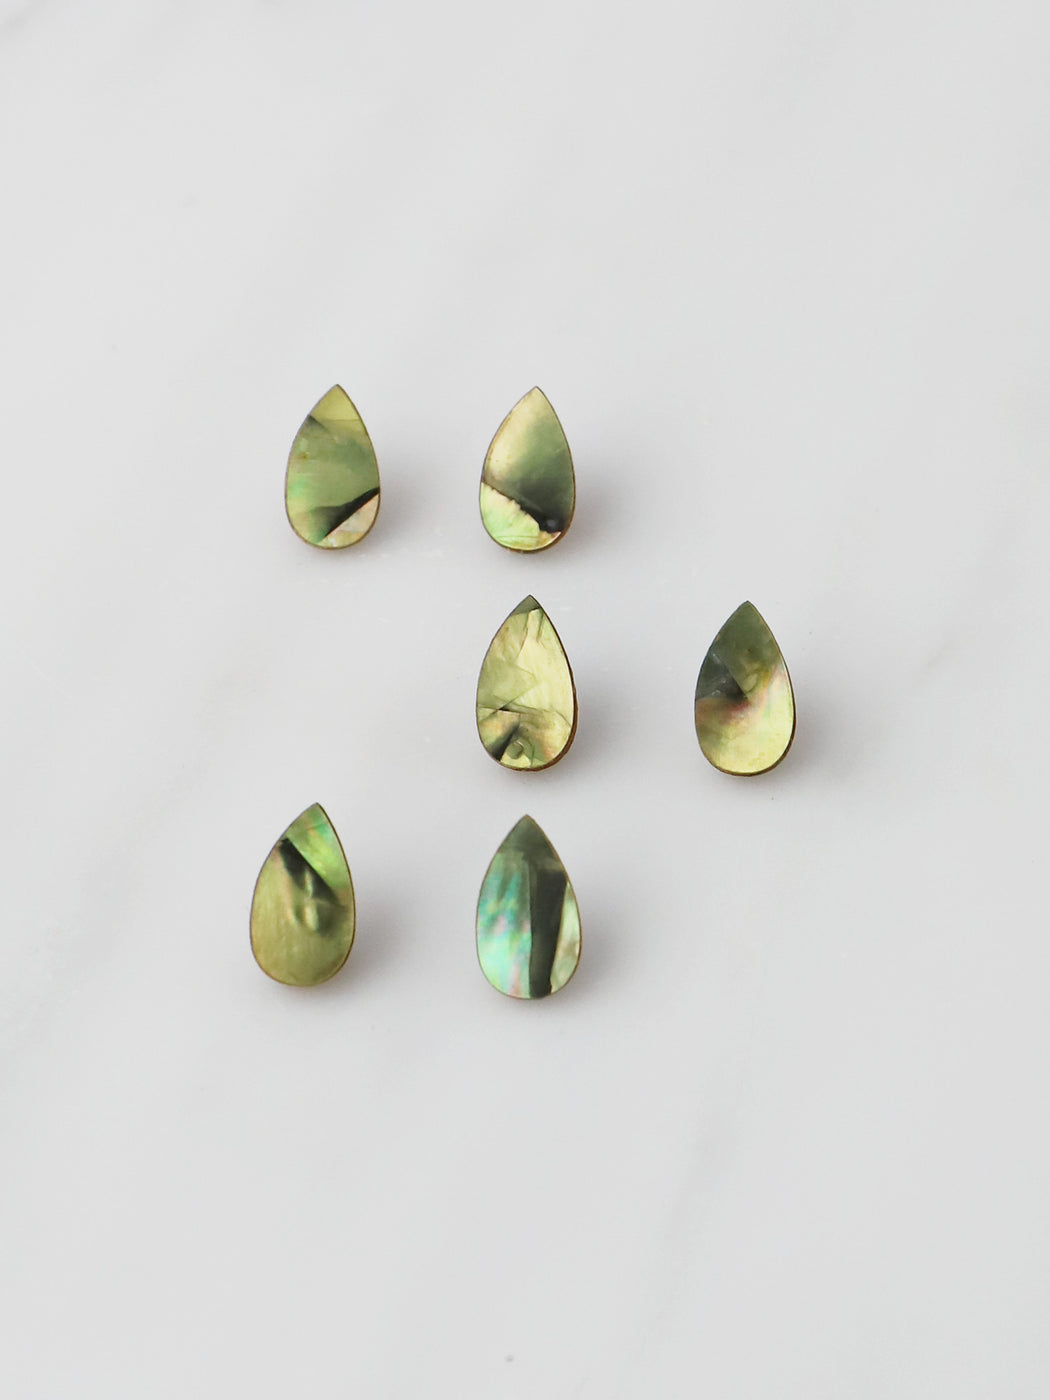 Raindrop Studs in Olive Mother of Pearl